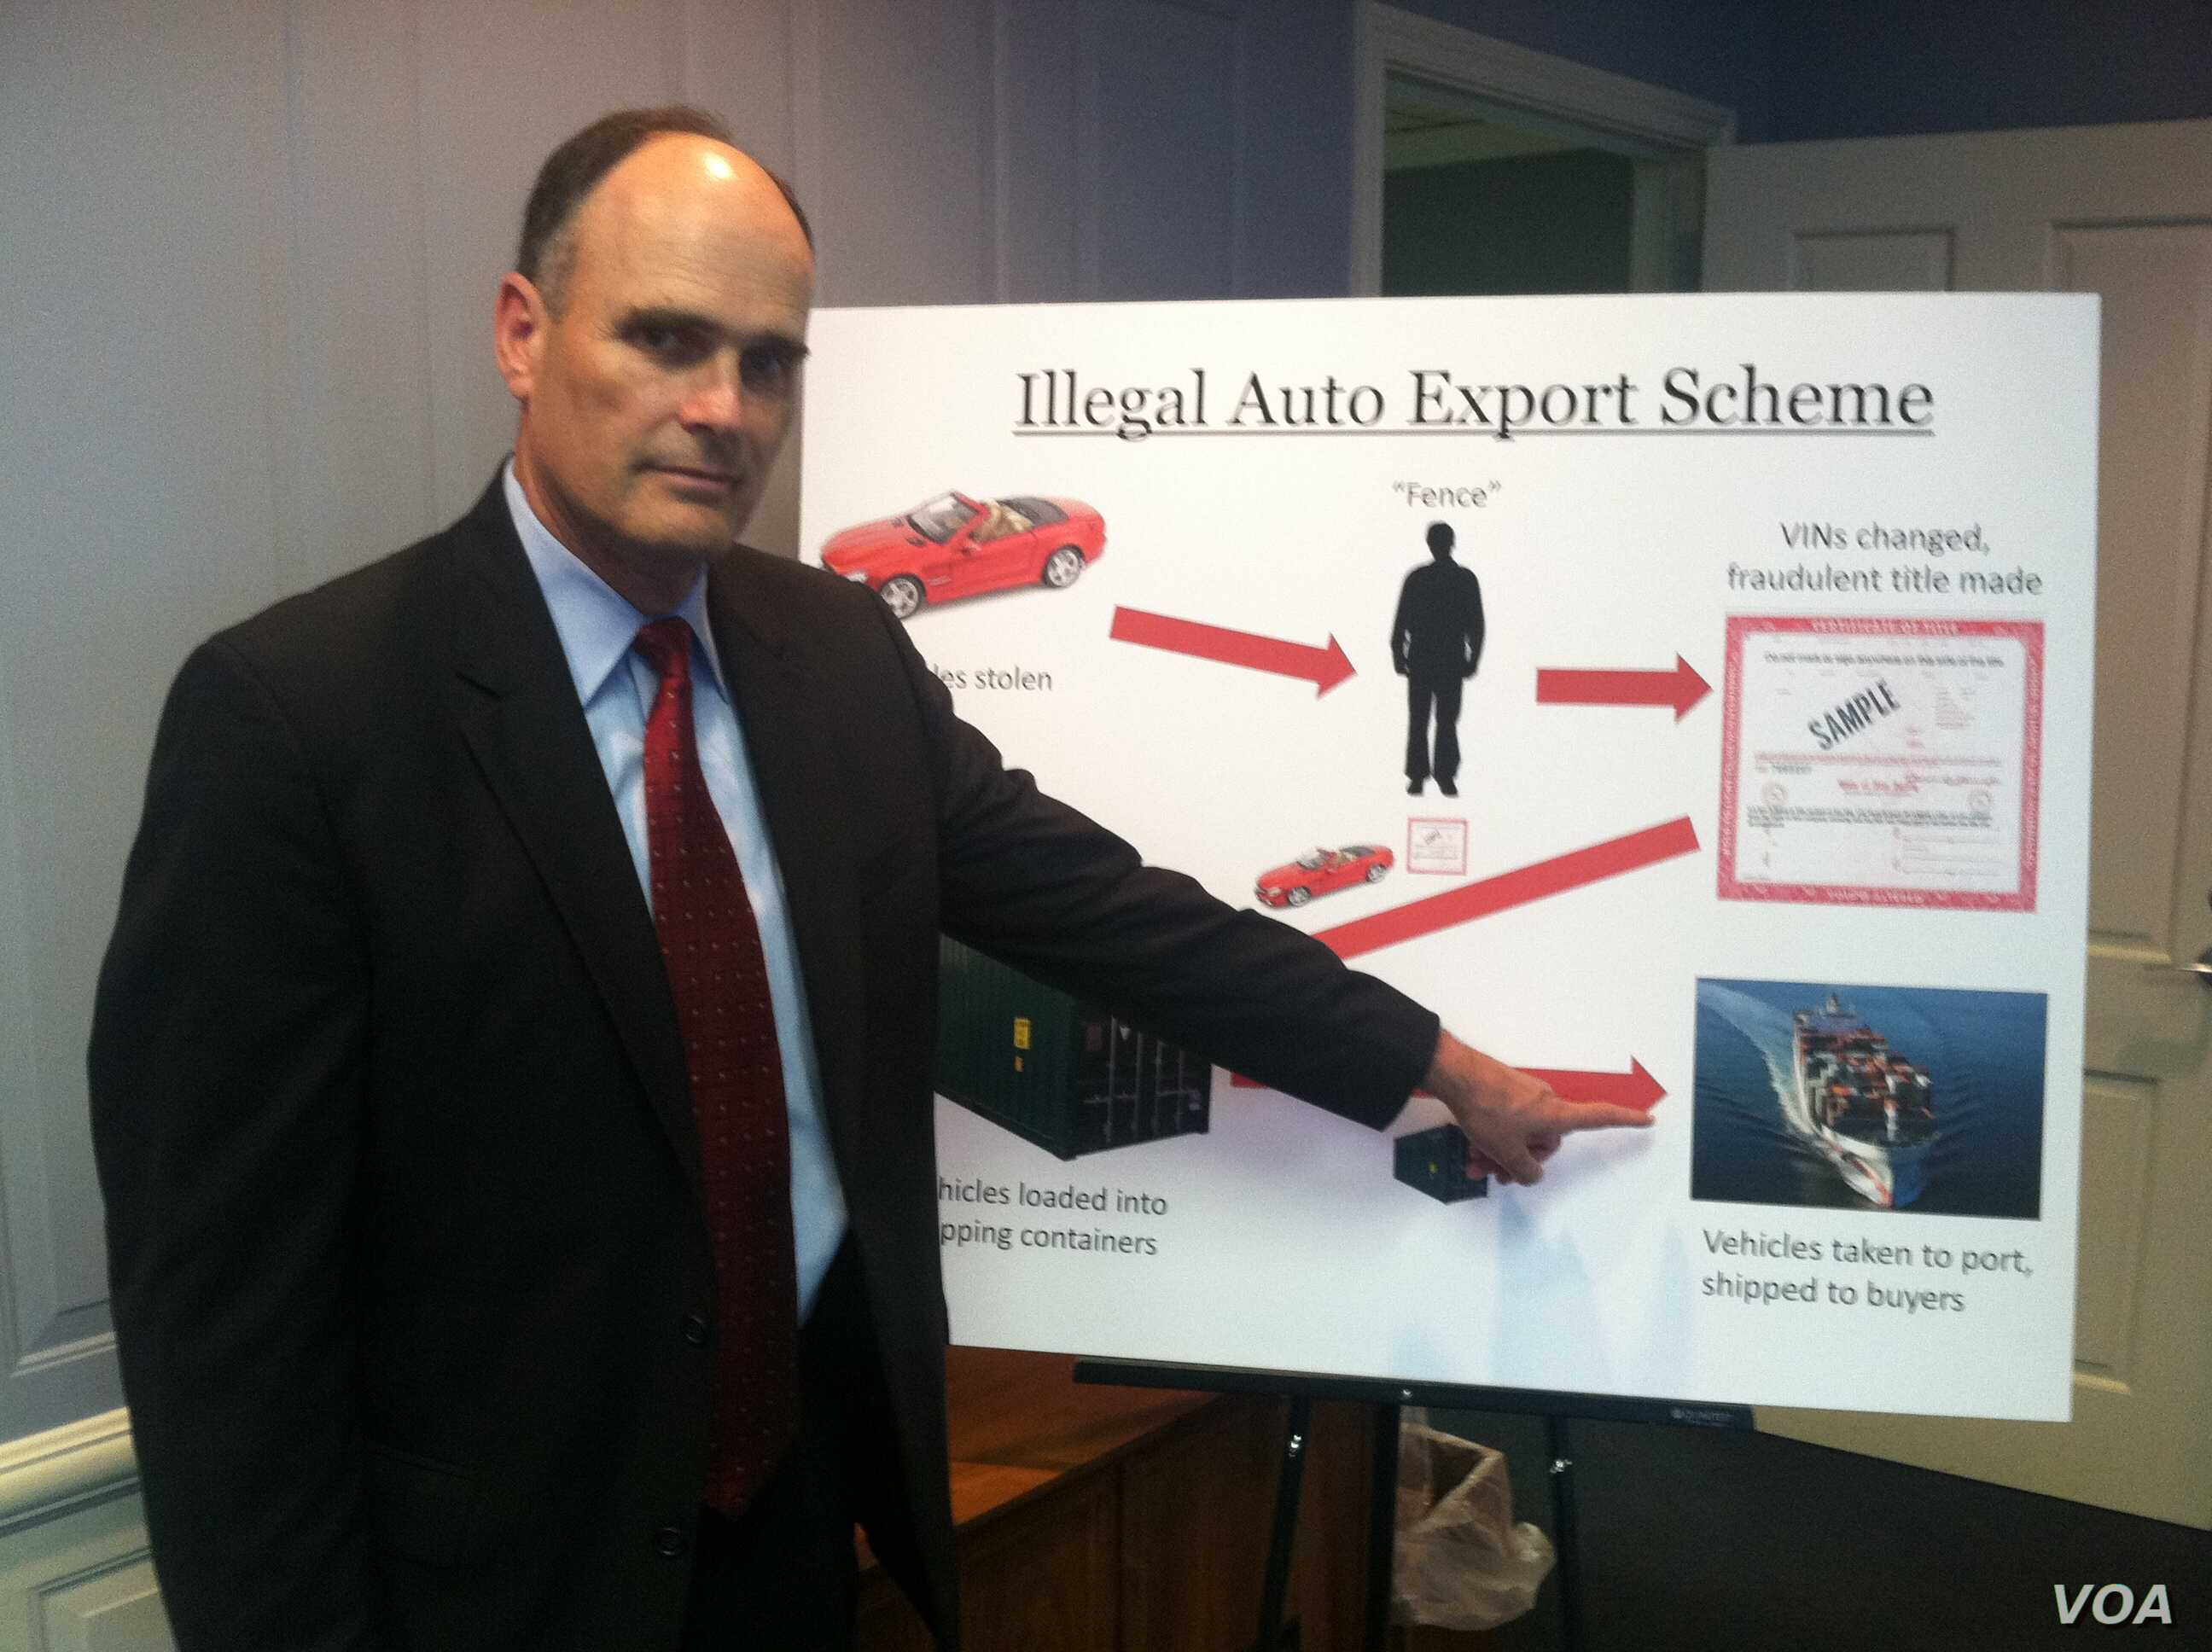 IAssistant U.S. Attorney Gilmore Childers outlines the way the international car theft and export ring worked, May 23, 2012. (A. Phillips/VOA)